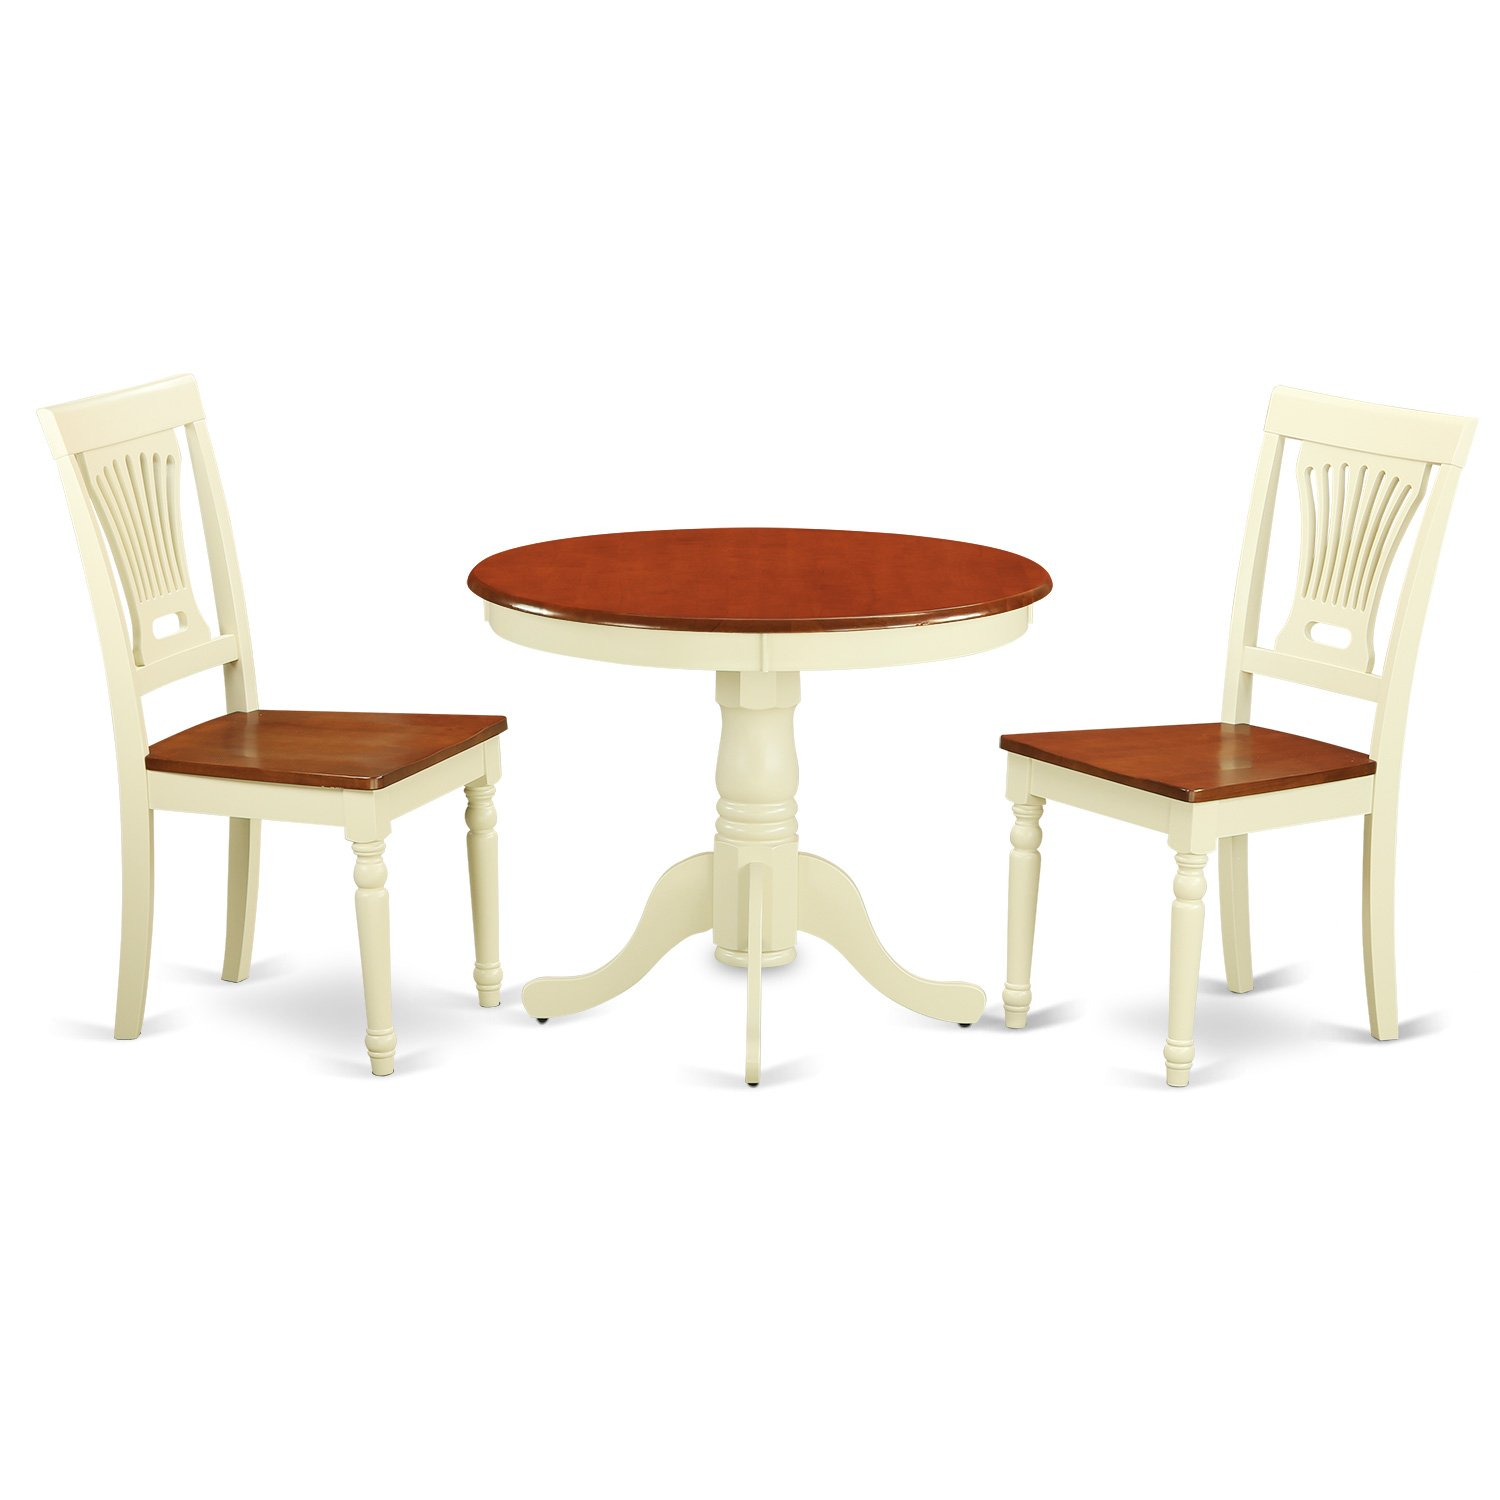 East West Furniture ANPL3-WHI-W 3-Piece Kitchen Nook Dining Table Set, Buttermilk/Cherry Finish